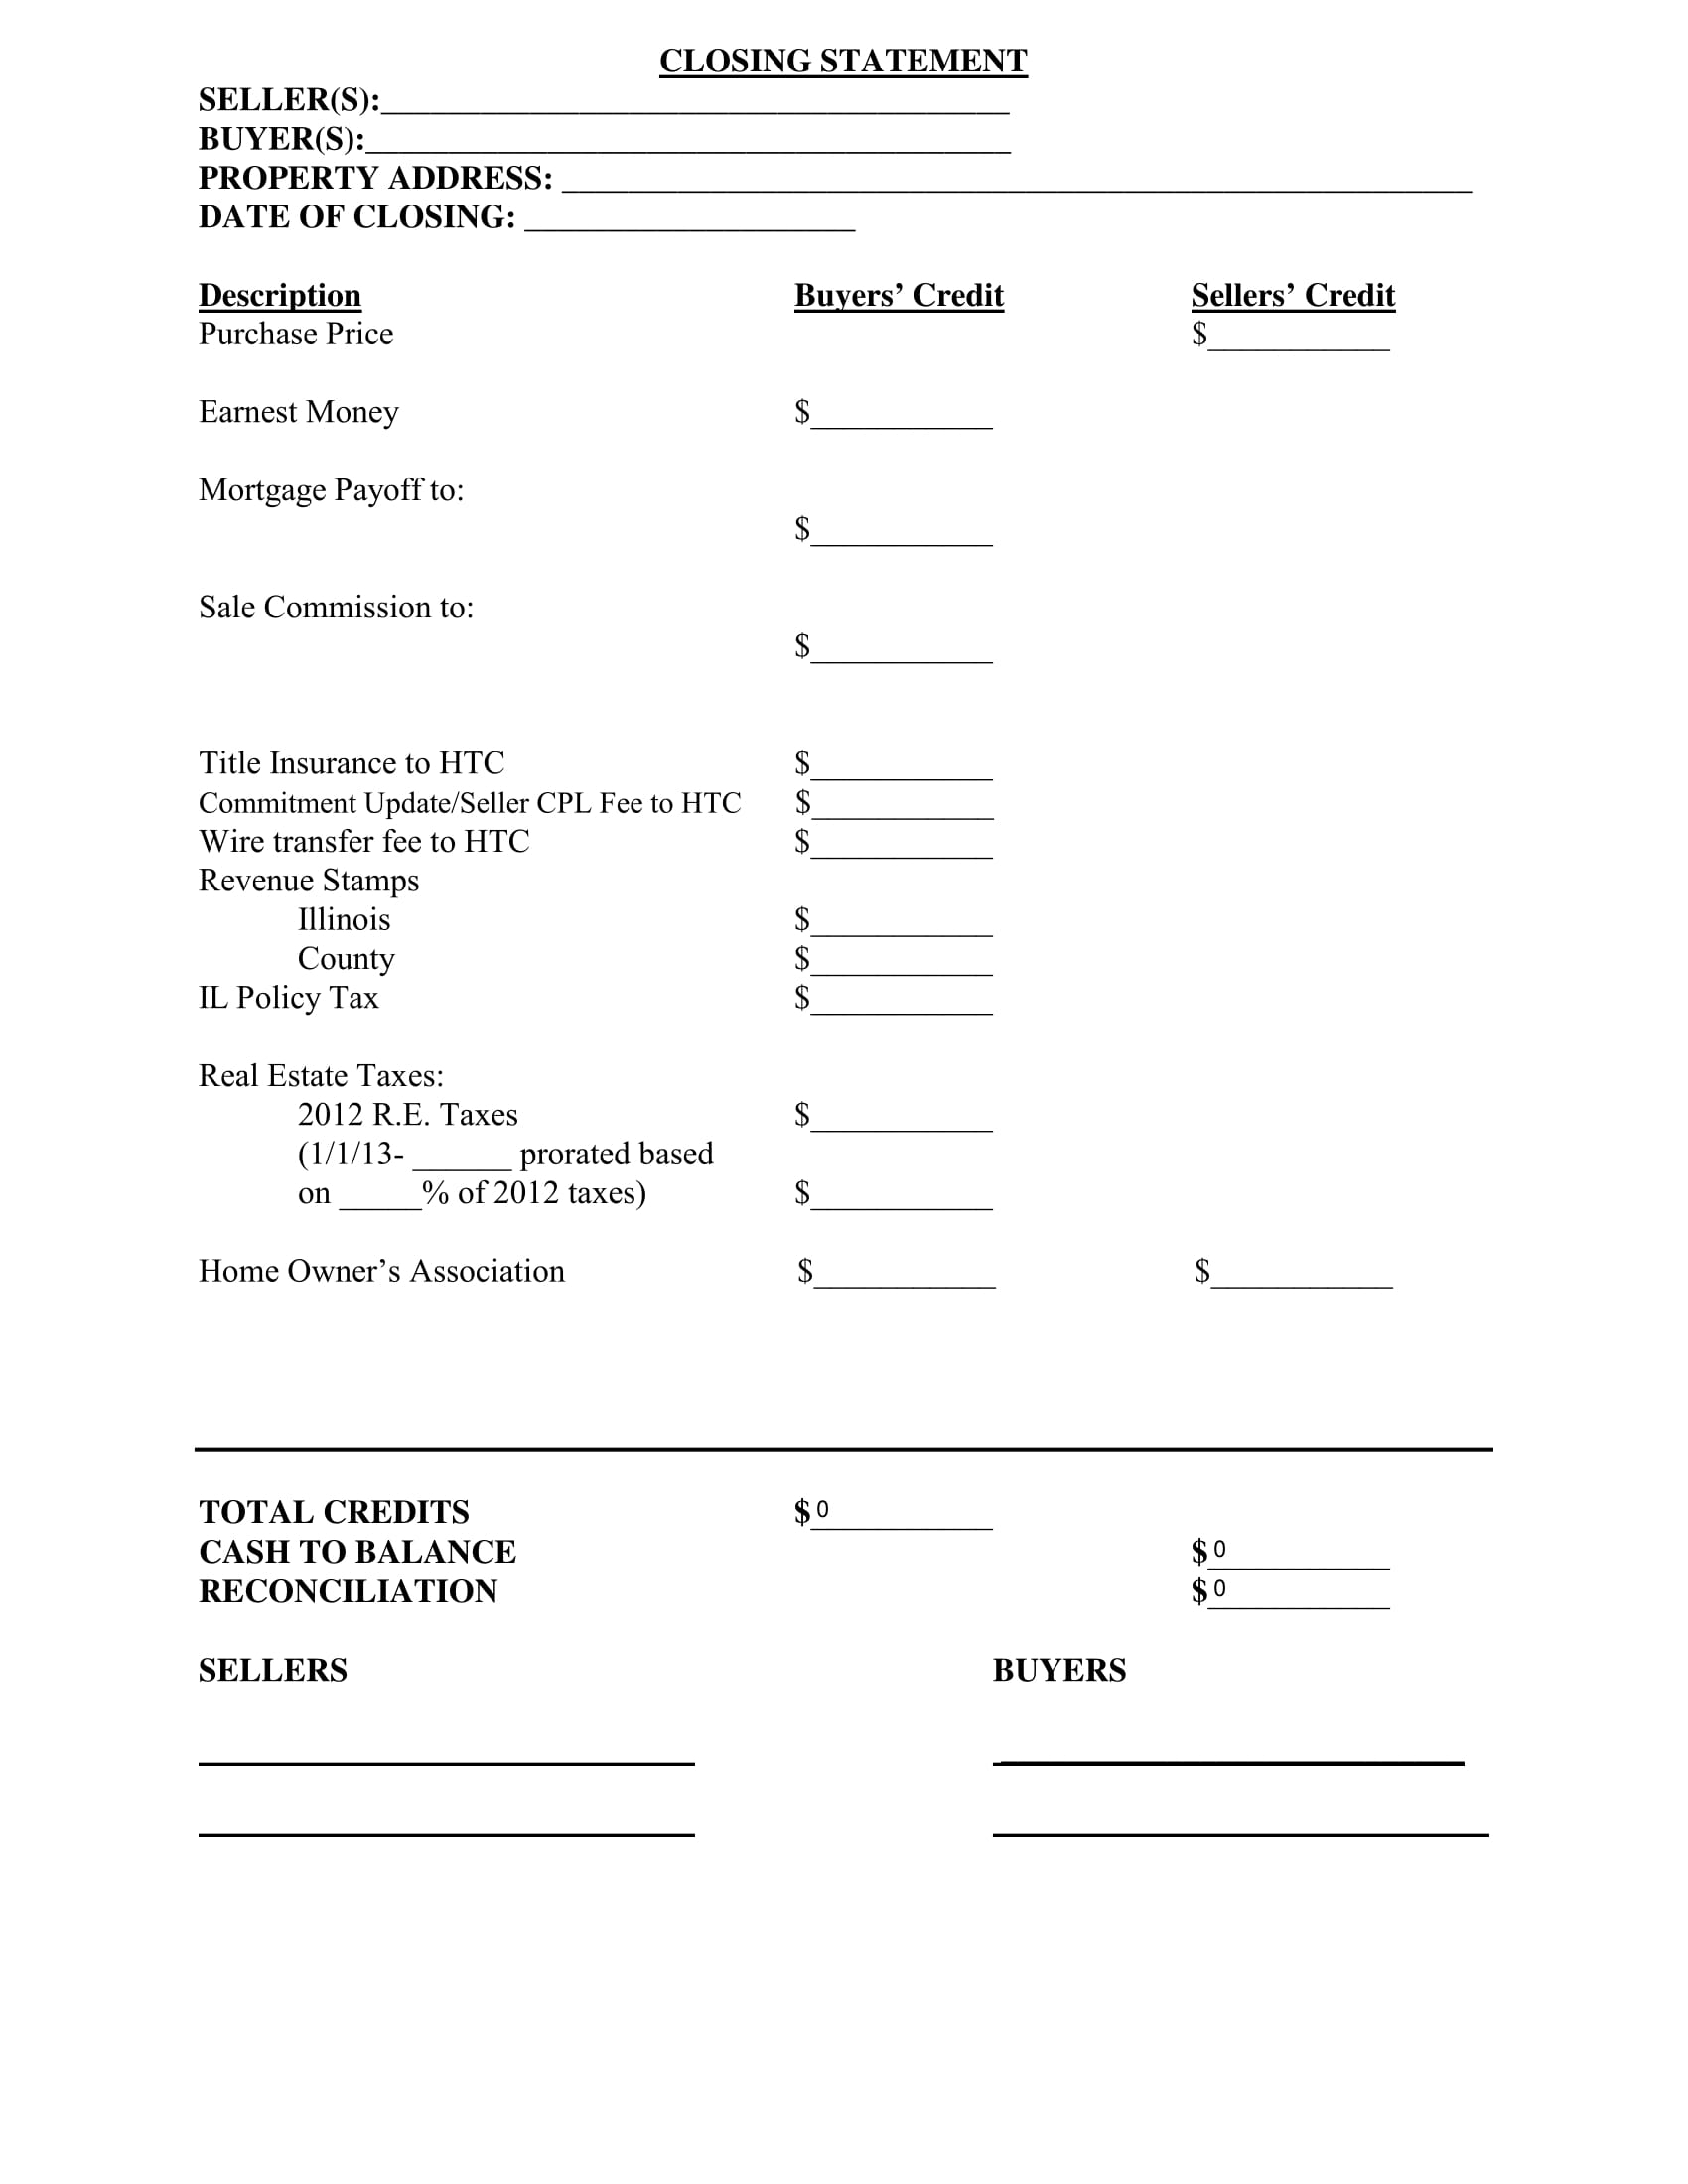 property purchase closing statement form 1